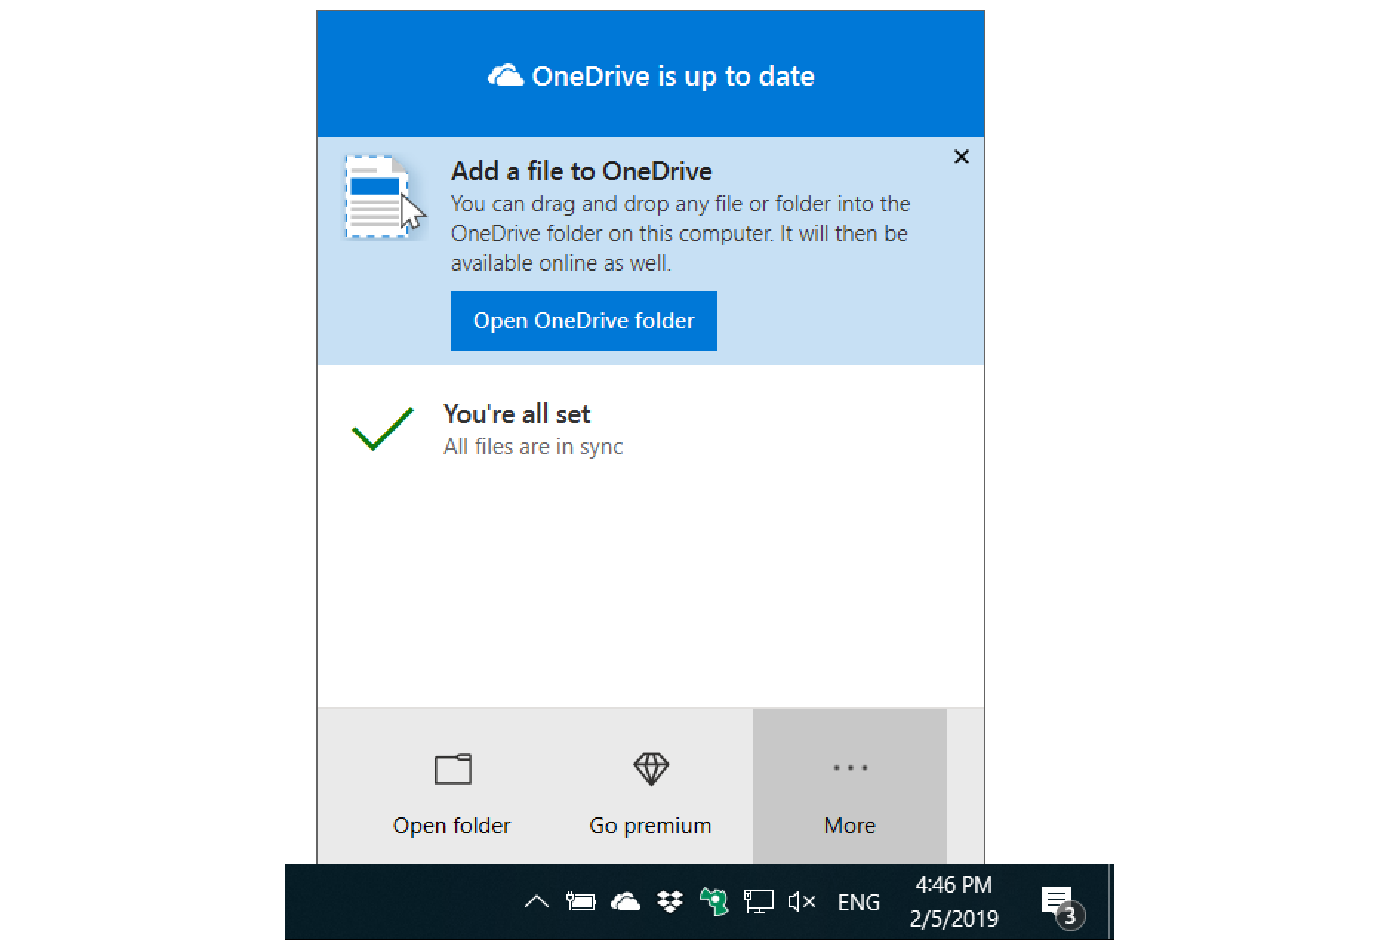 How to Make the Best Out of Microsoft OneDrive: Tips for